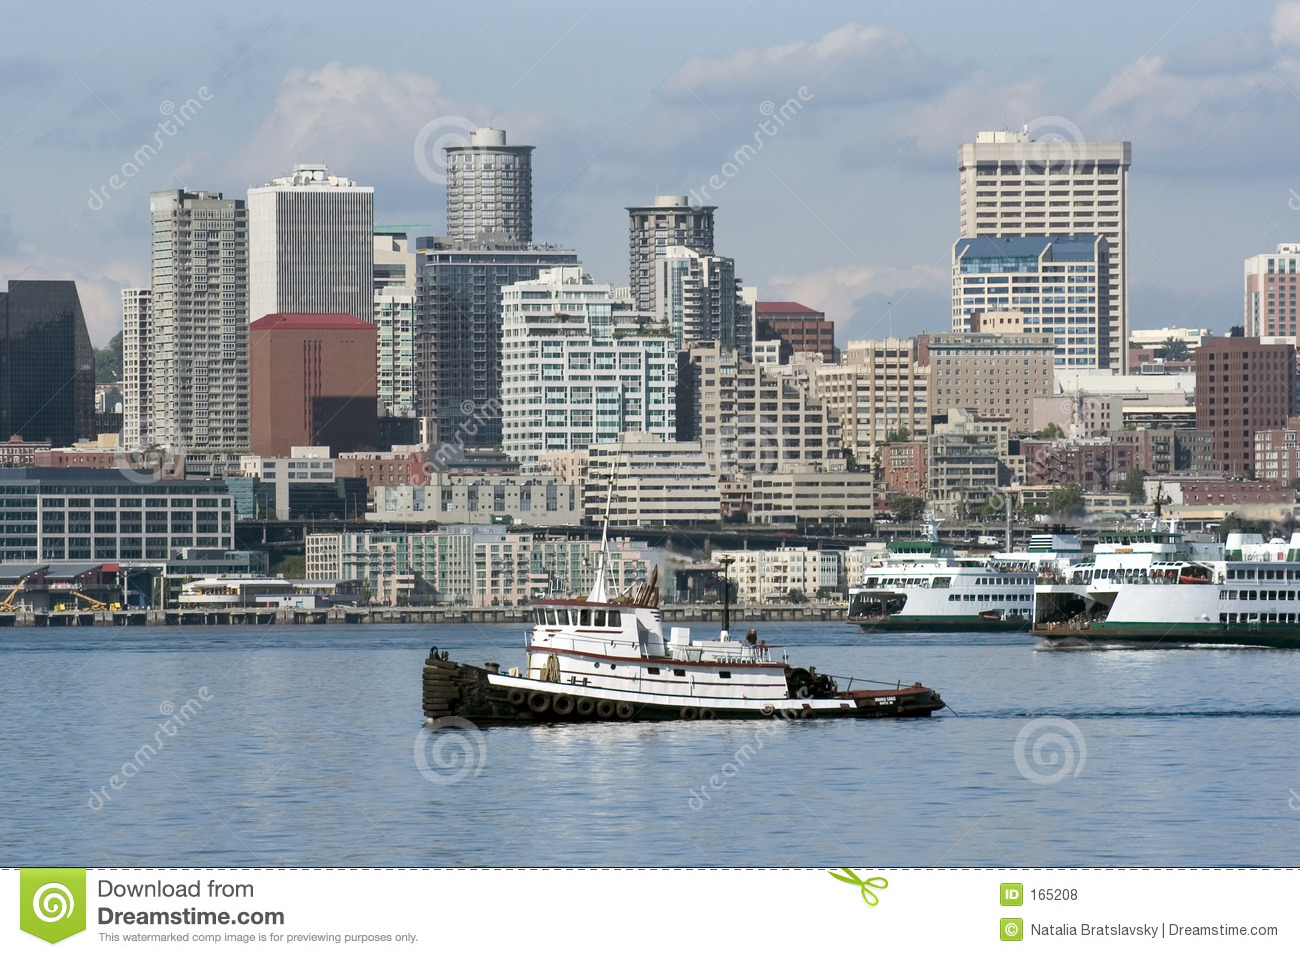 Towboat in Seattle